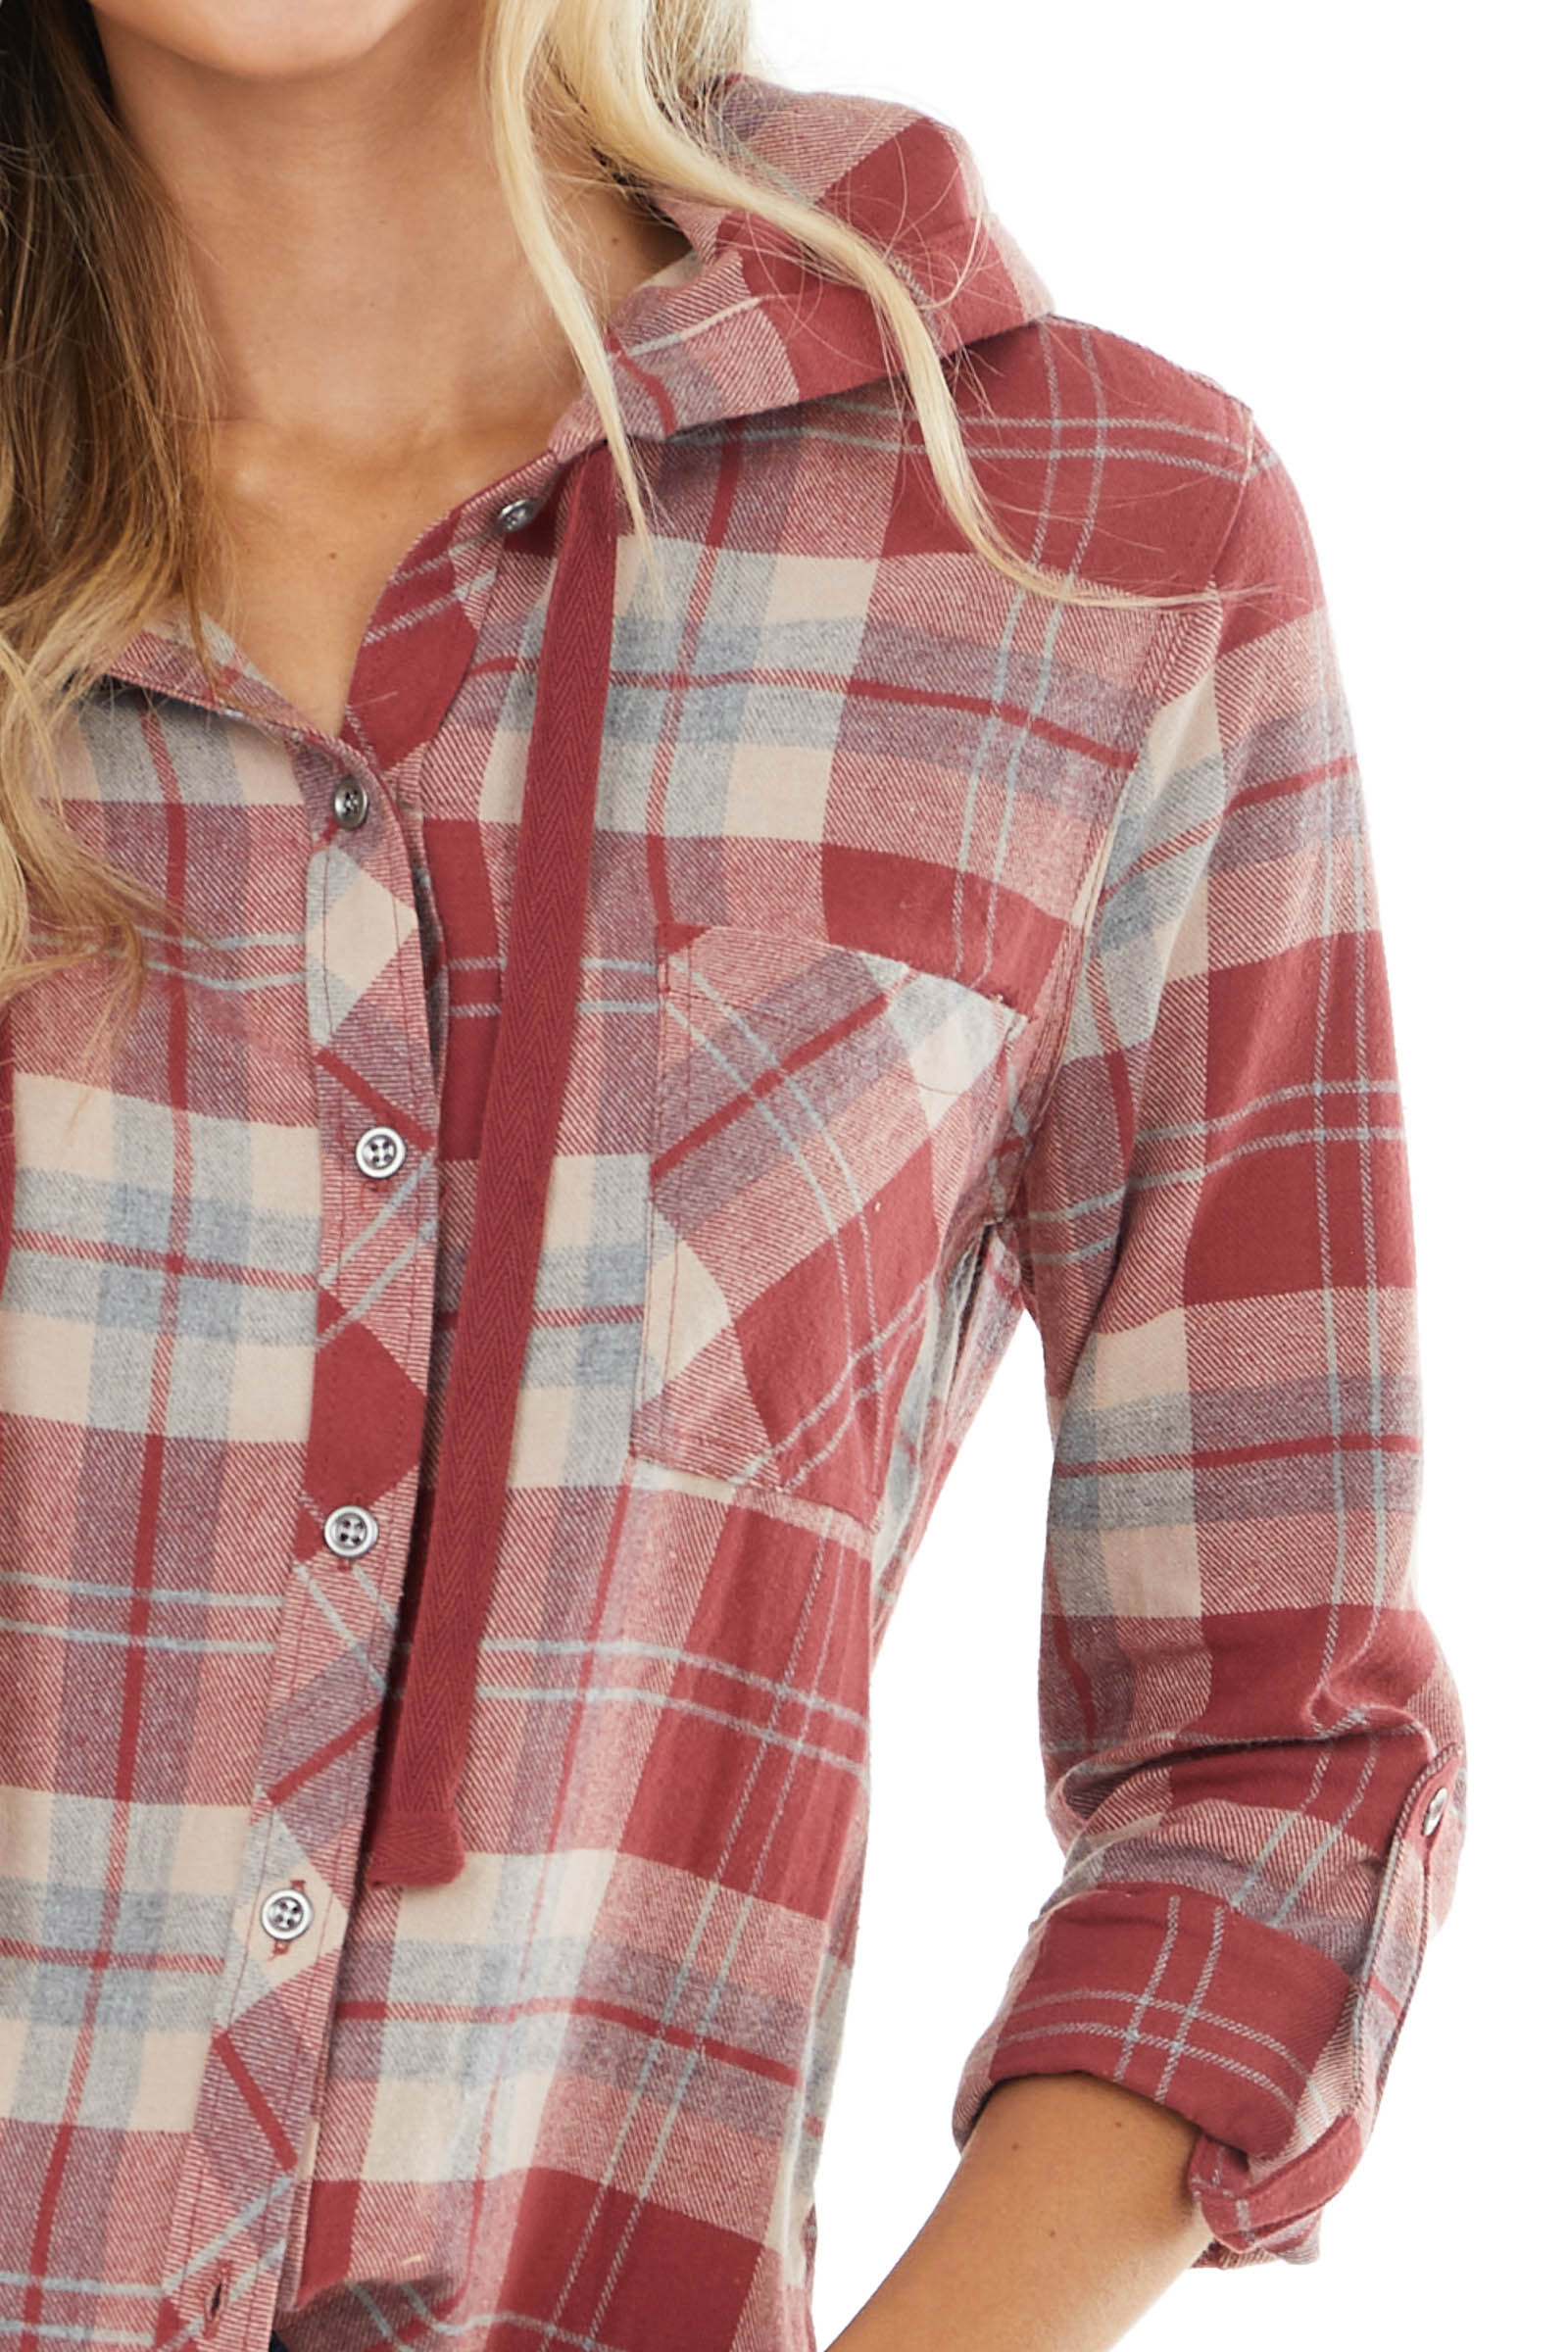 Brick Red Plaid Button Up Top with Drawstring Hood